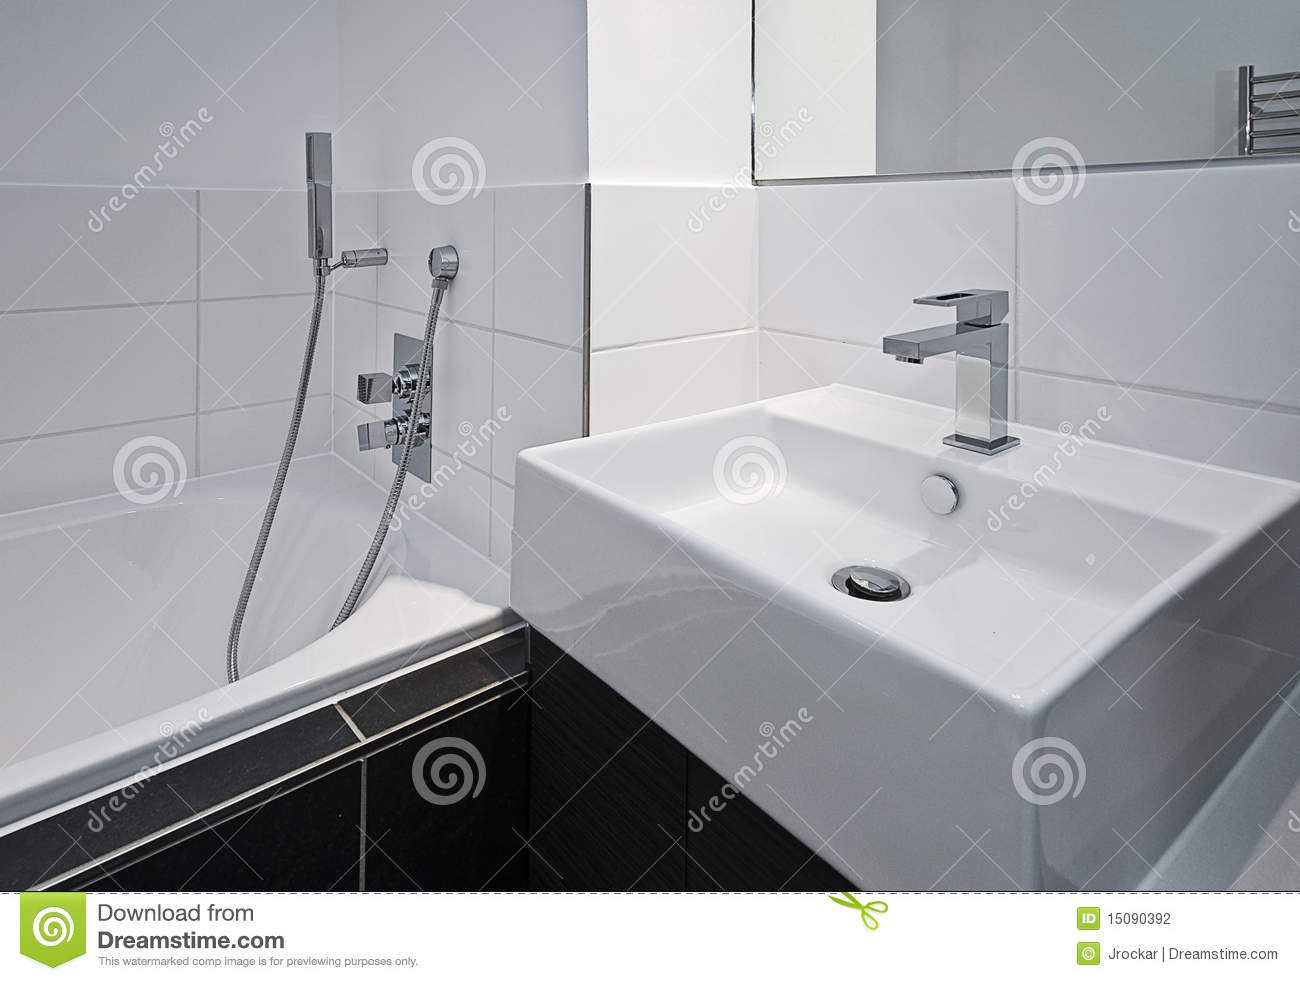 Designer bathroom appliances stock photography image for Restroom appliances